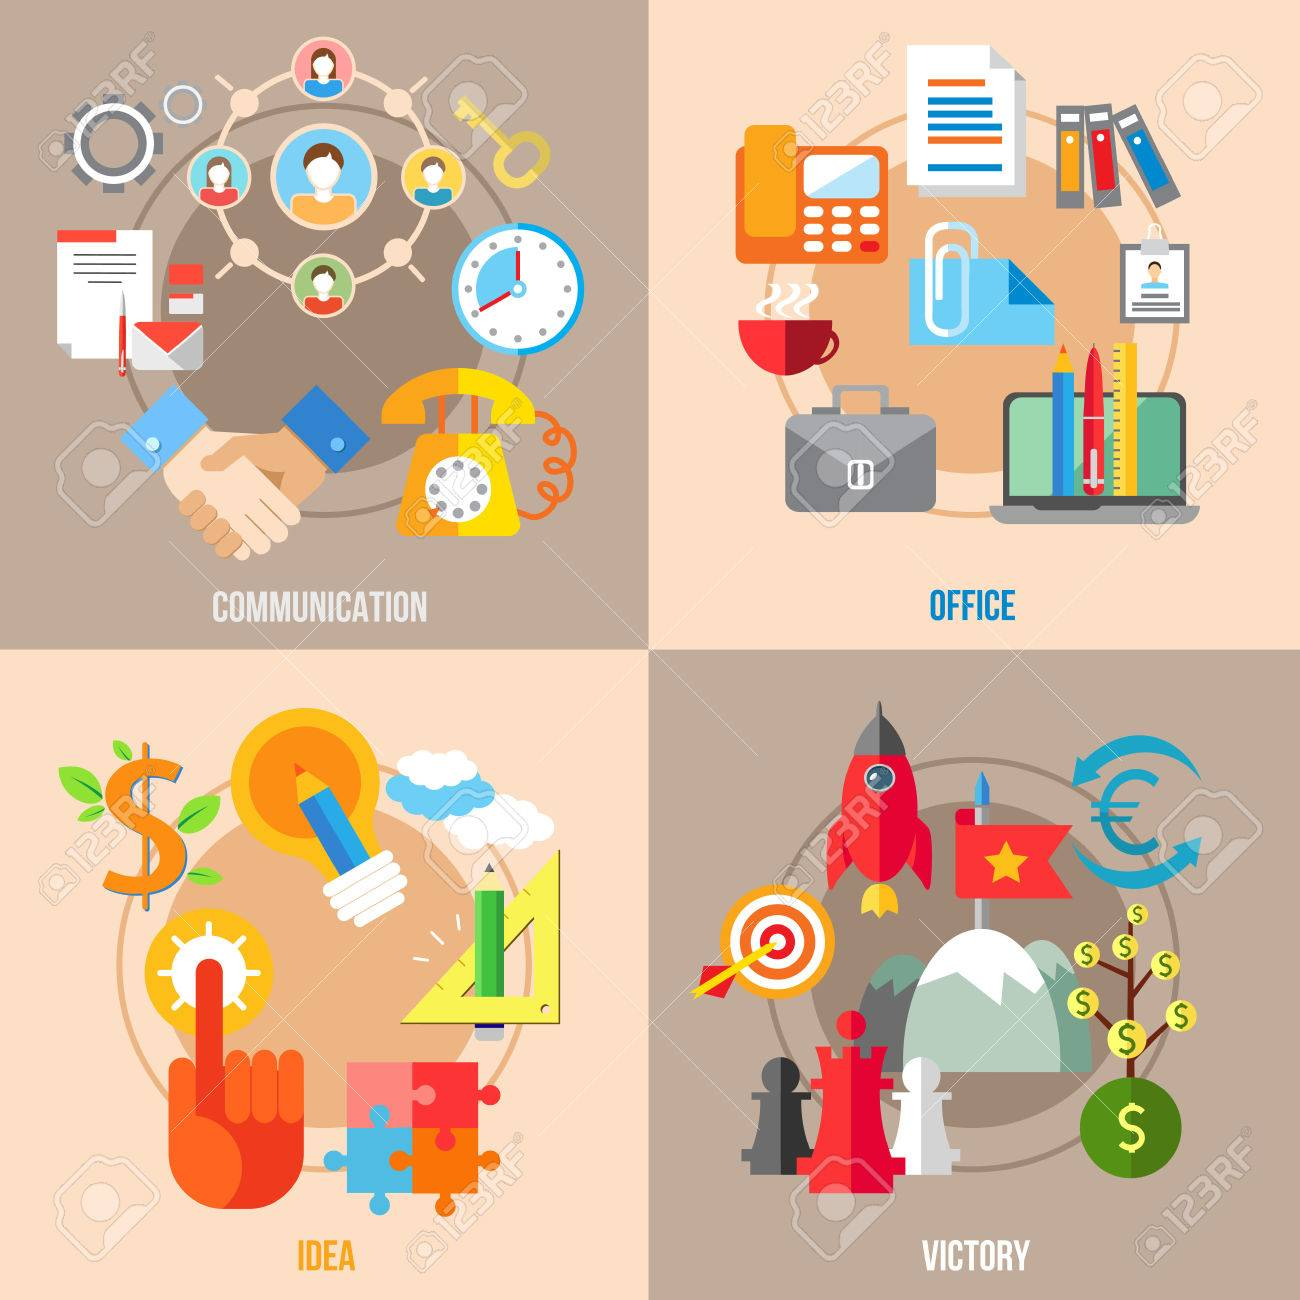 Set Of Flat Design Concepts Of Business Communication, Office, Idea,  Victory On Colored